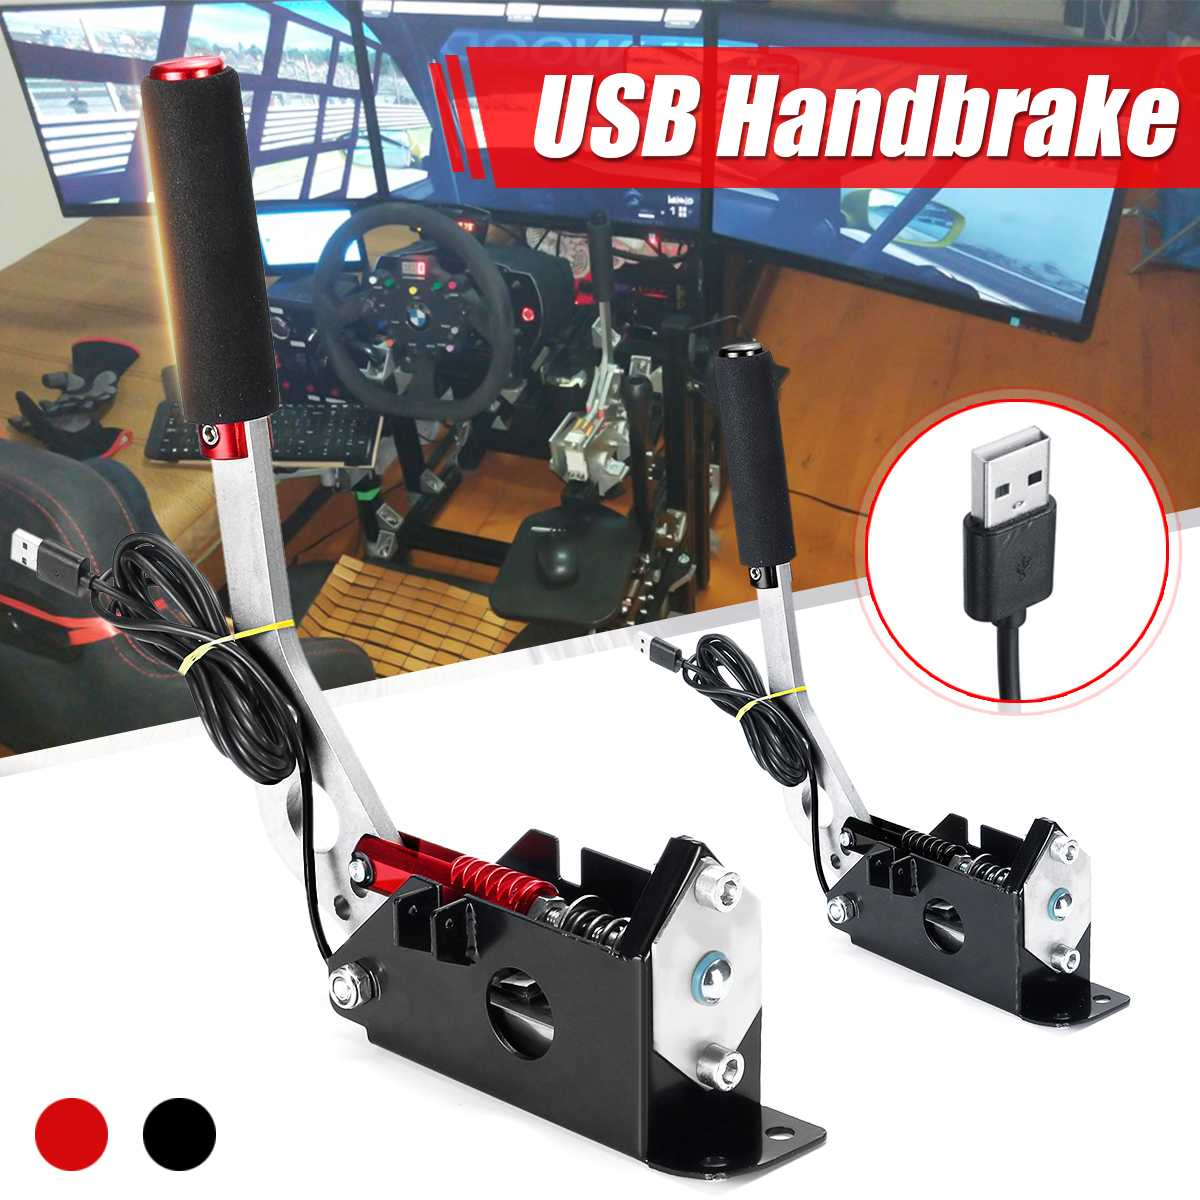 USB Handbrake Clamp PC Windows for Sim Racing Game for <font><b>Logitech</b></font> G25 G27 <font><b>G29</b></font> T500 T300 FANATECOSW for LFS DIRT RALLY image